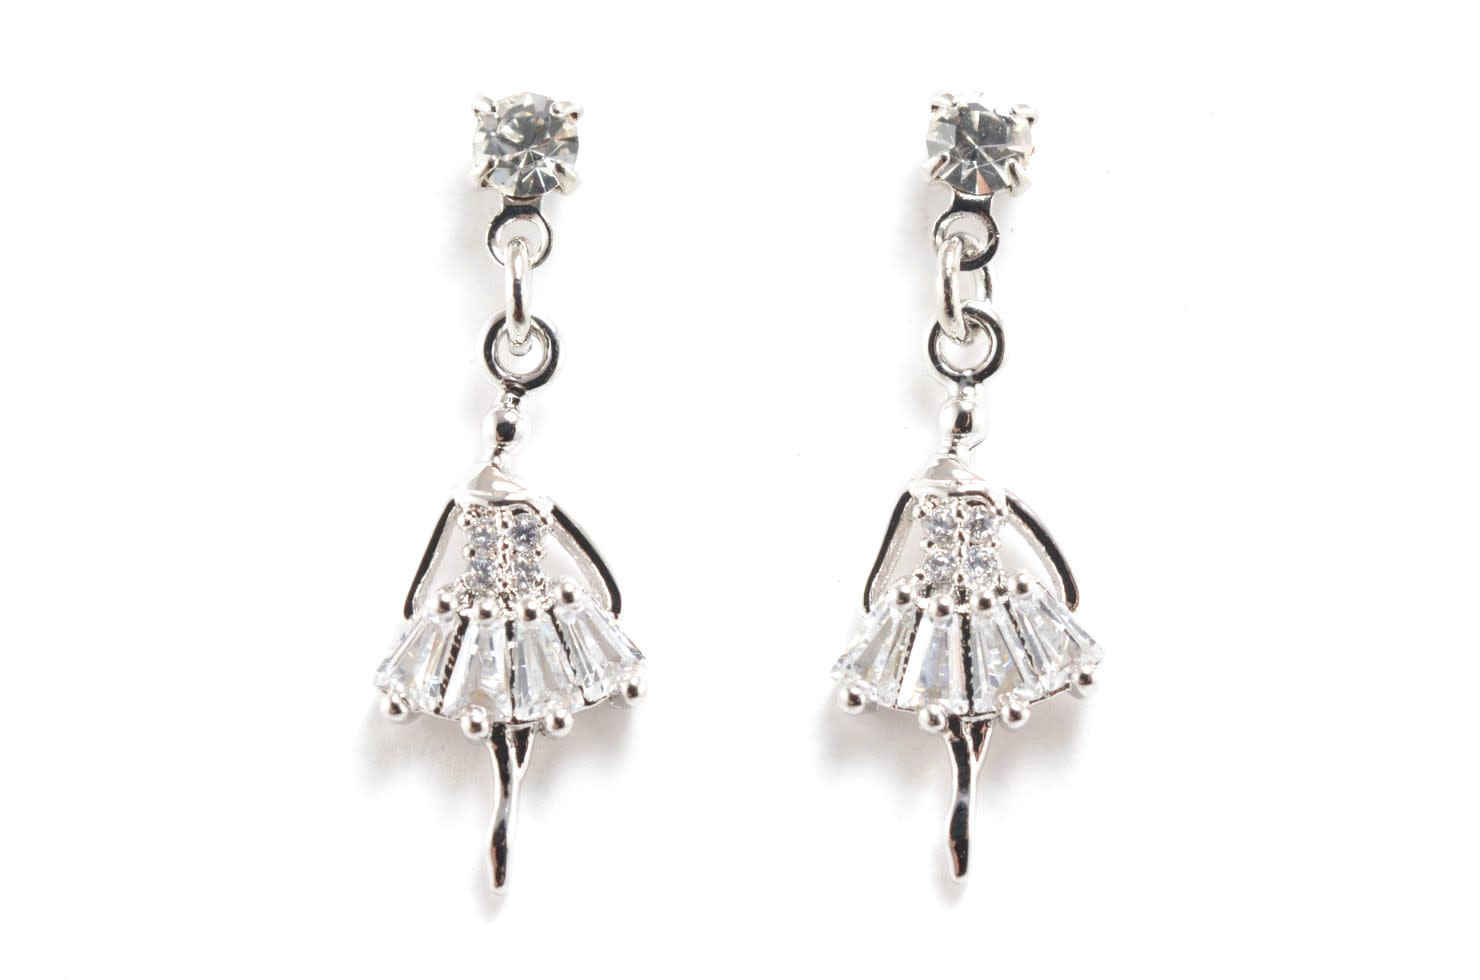 Ballerina Pendant Earrings, Yunie E050451H